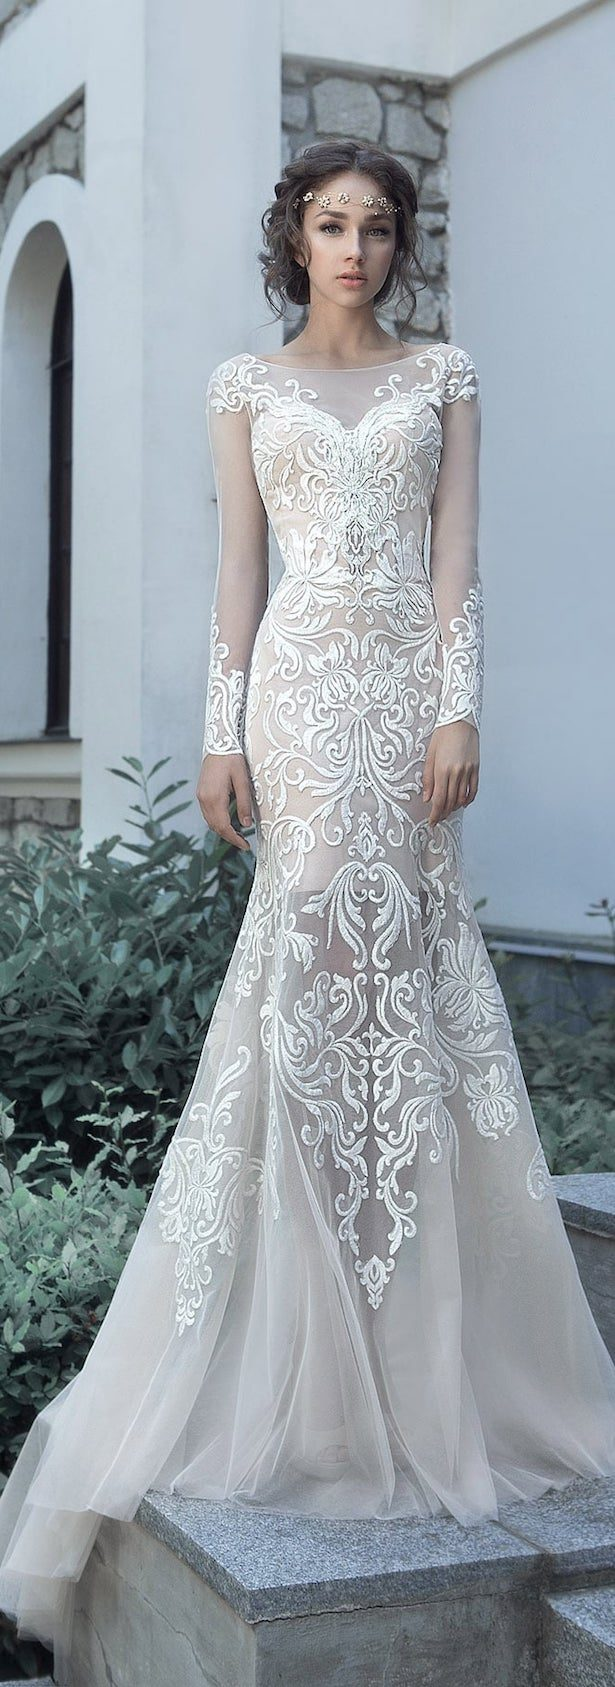 Winter Wedding Dress Milva 2017 Dresses Sunrise Collection